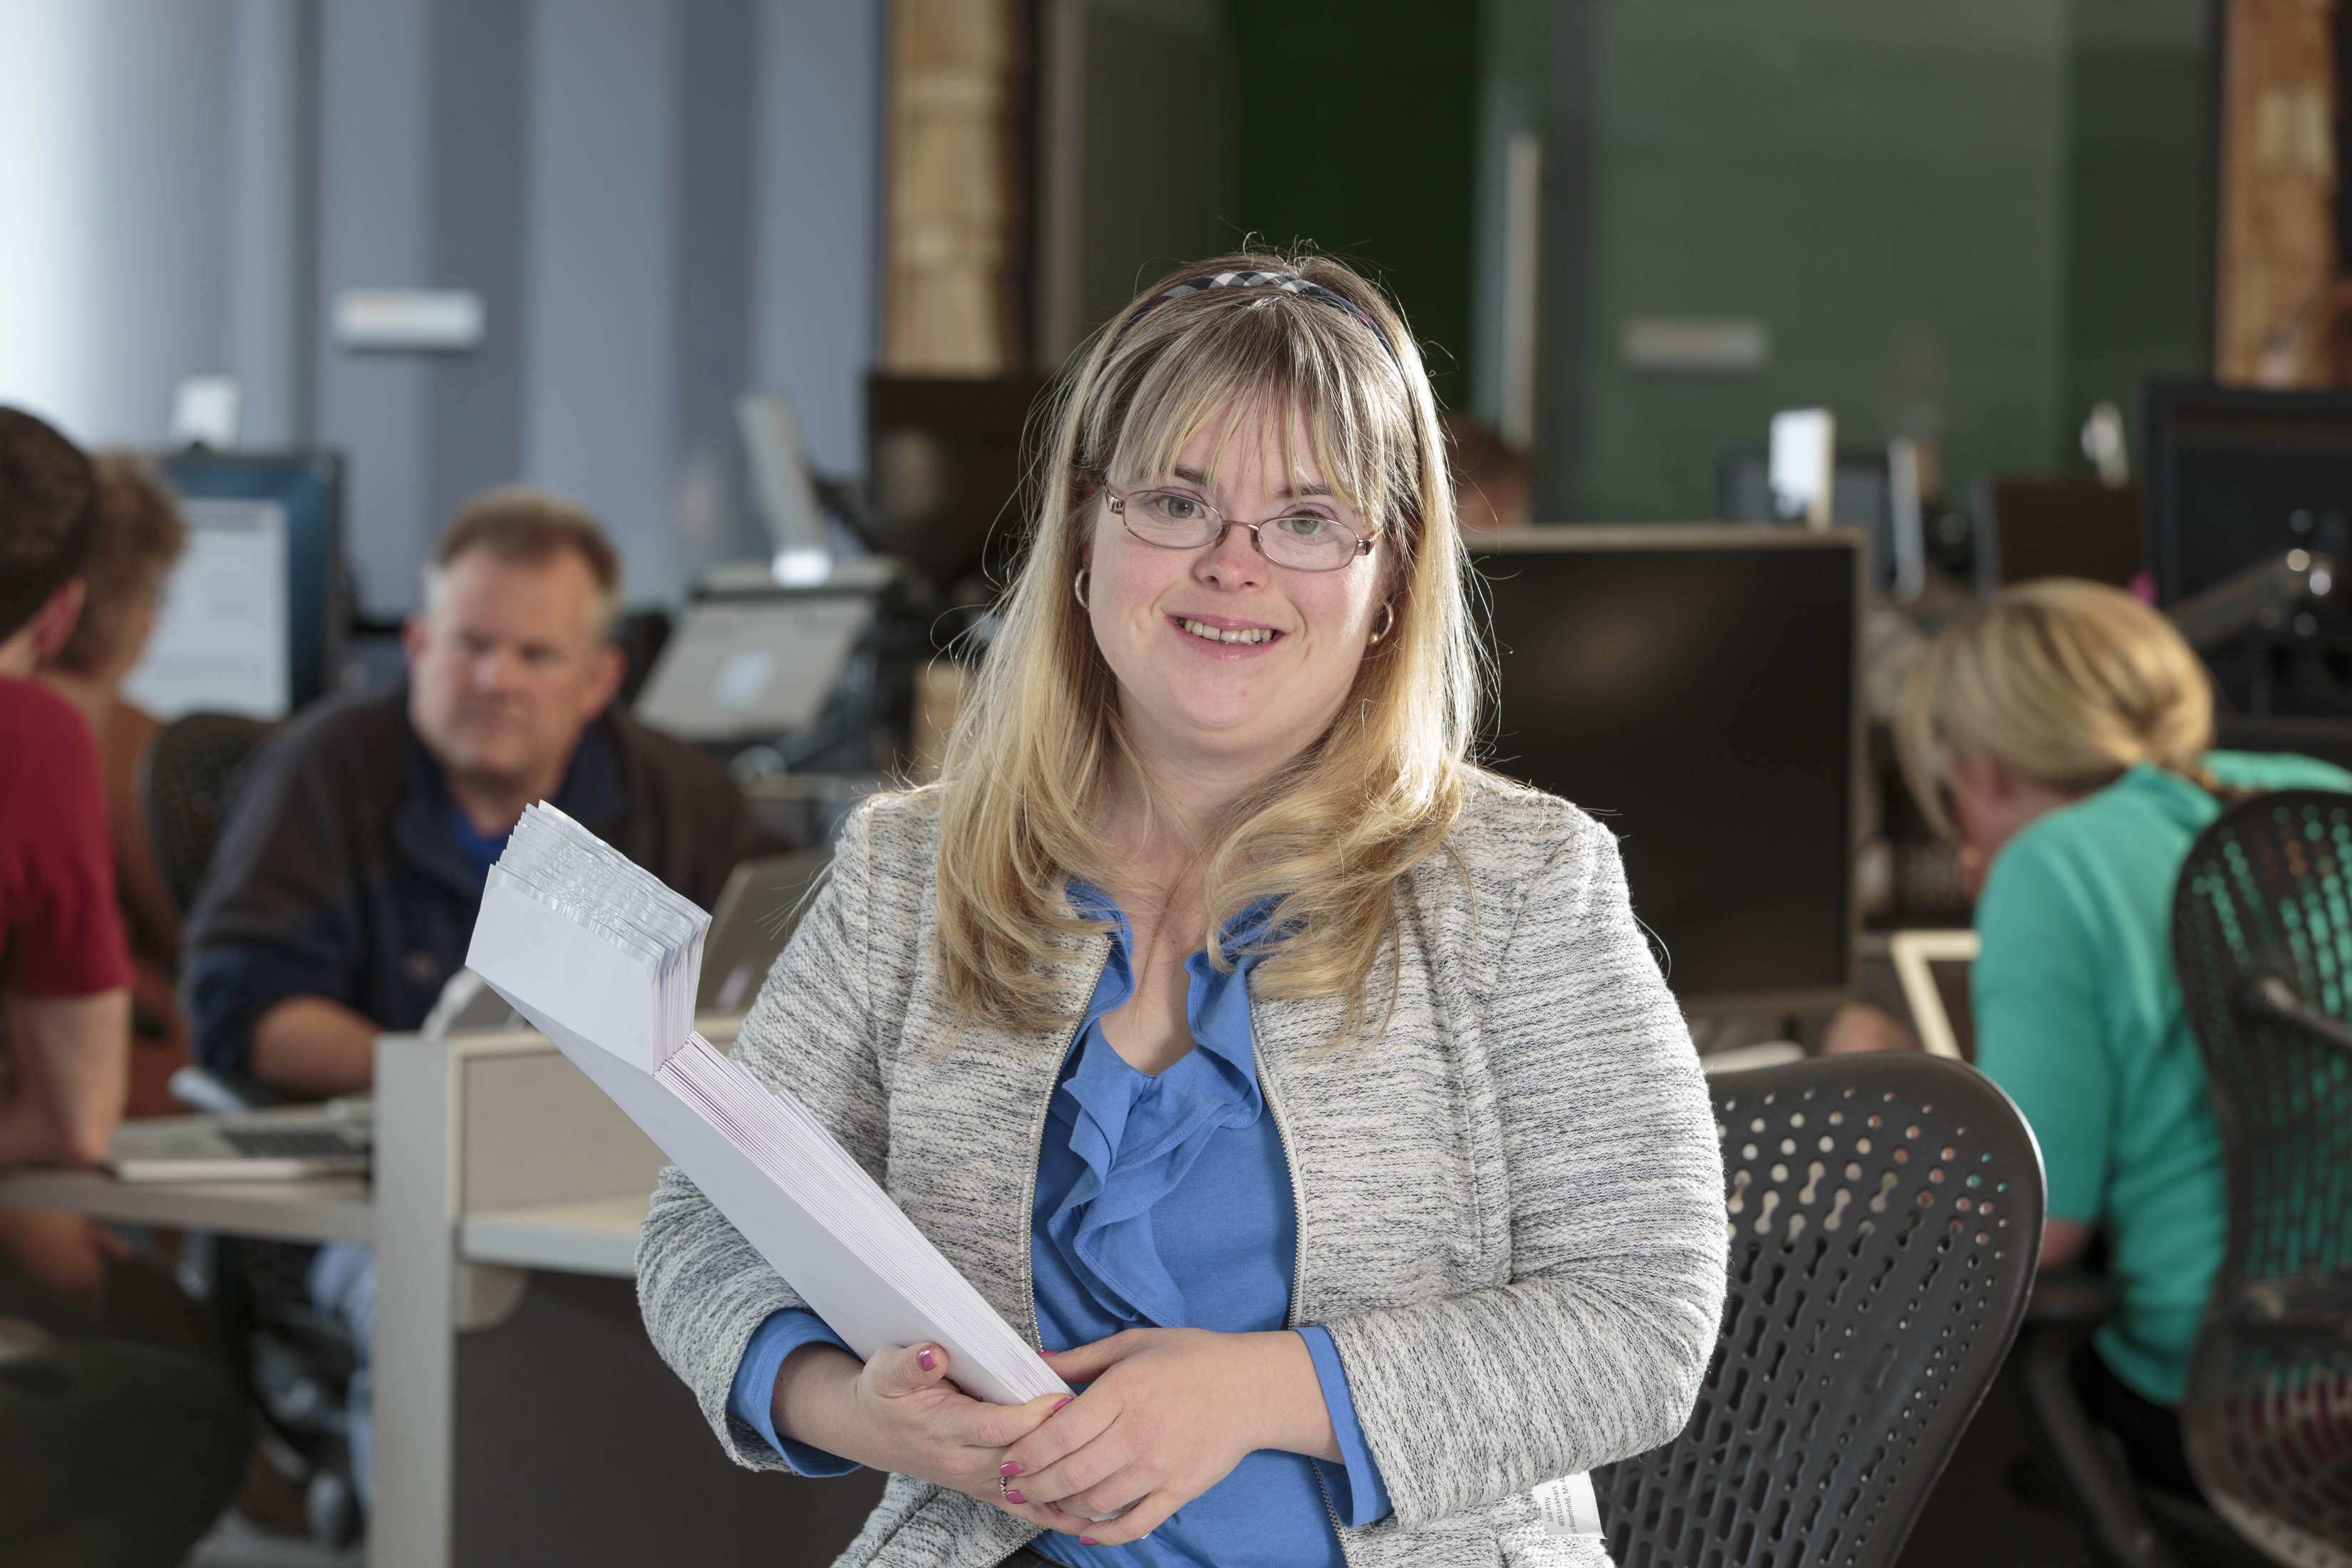 Kate Bartlett, who has Down syndrome, has been working as a benefits assistant at Aquent for 11 years, where she uses technology skills to do her job.